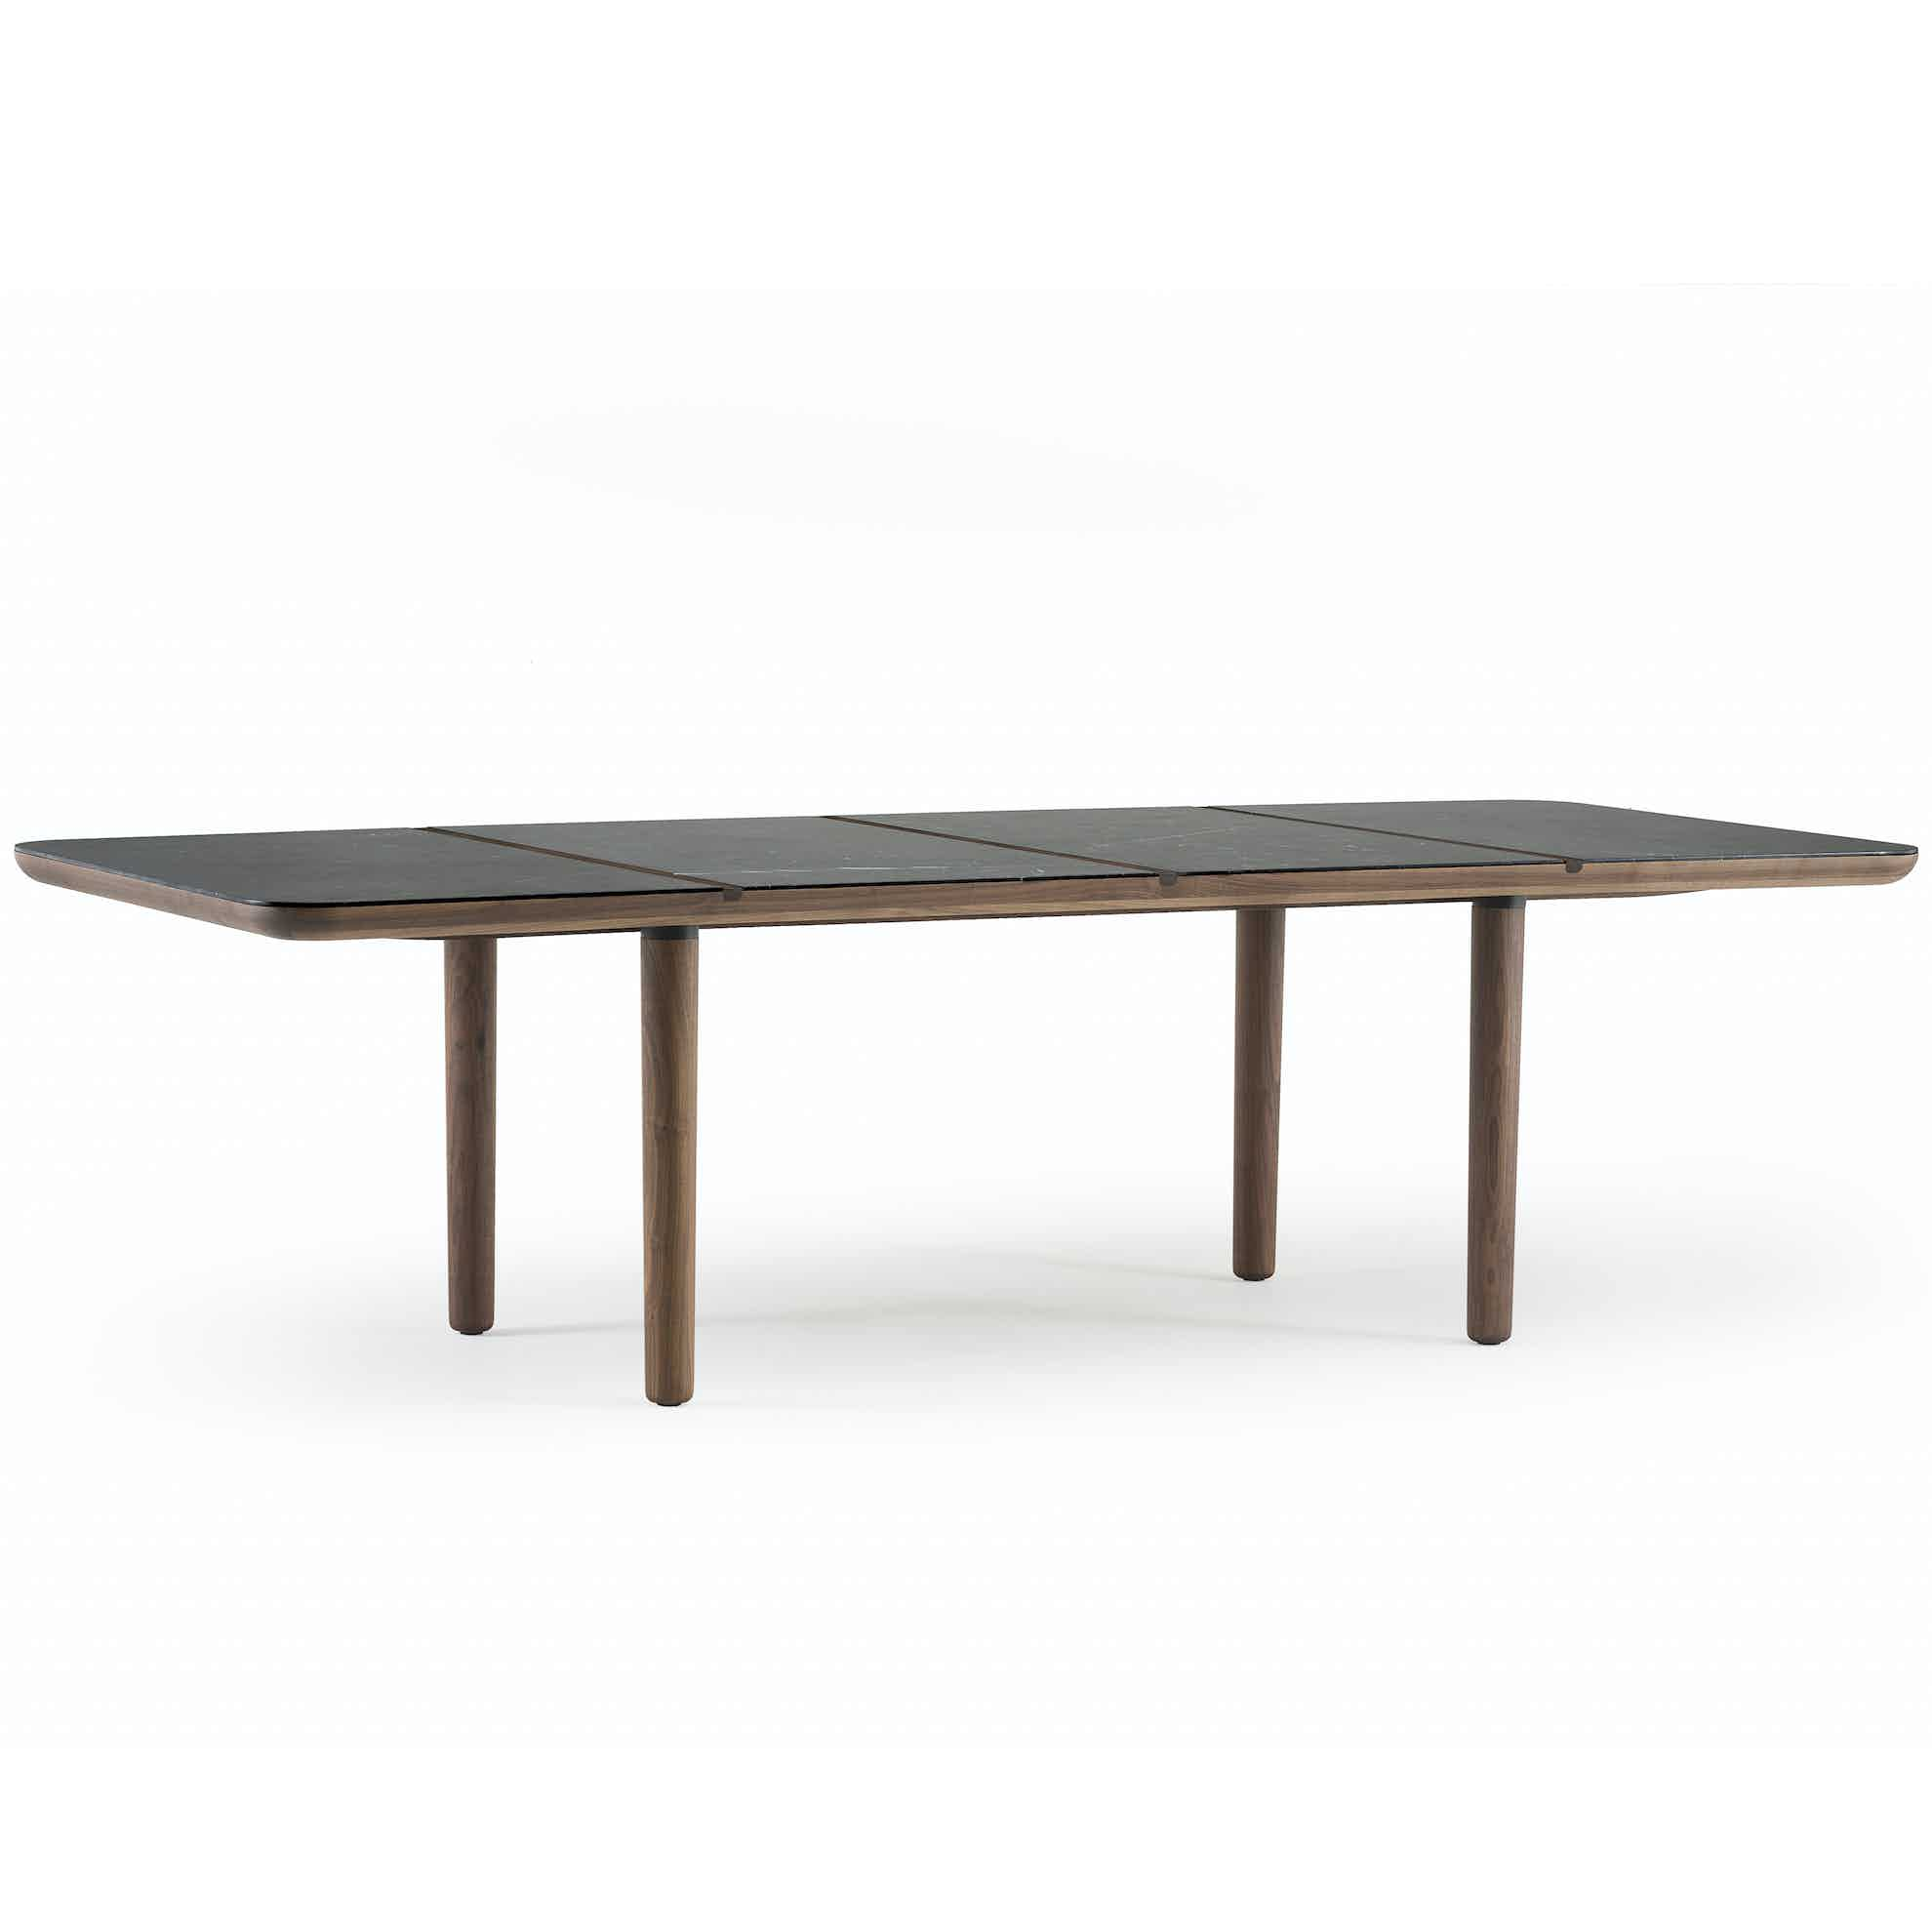 De La Espada Nichetto Marlon Rectangular Table Thumbnail Haute Living